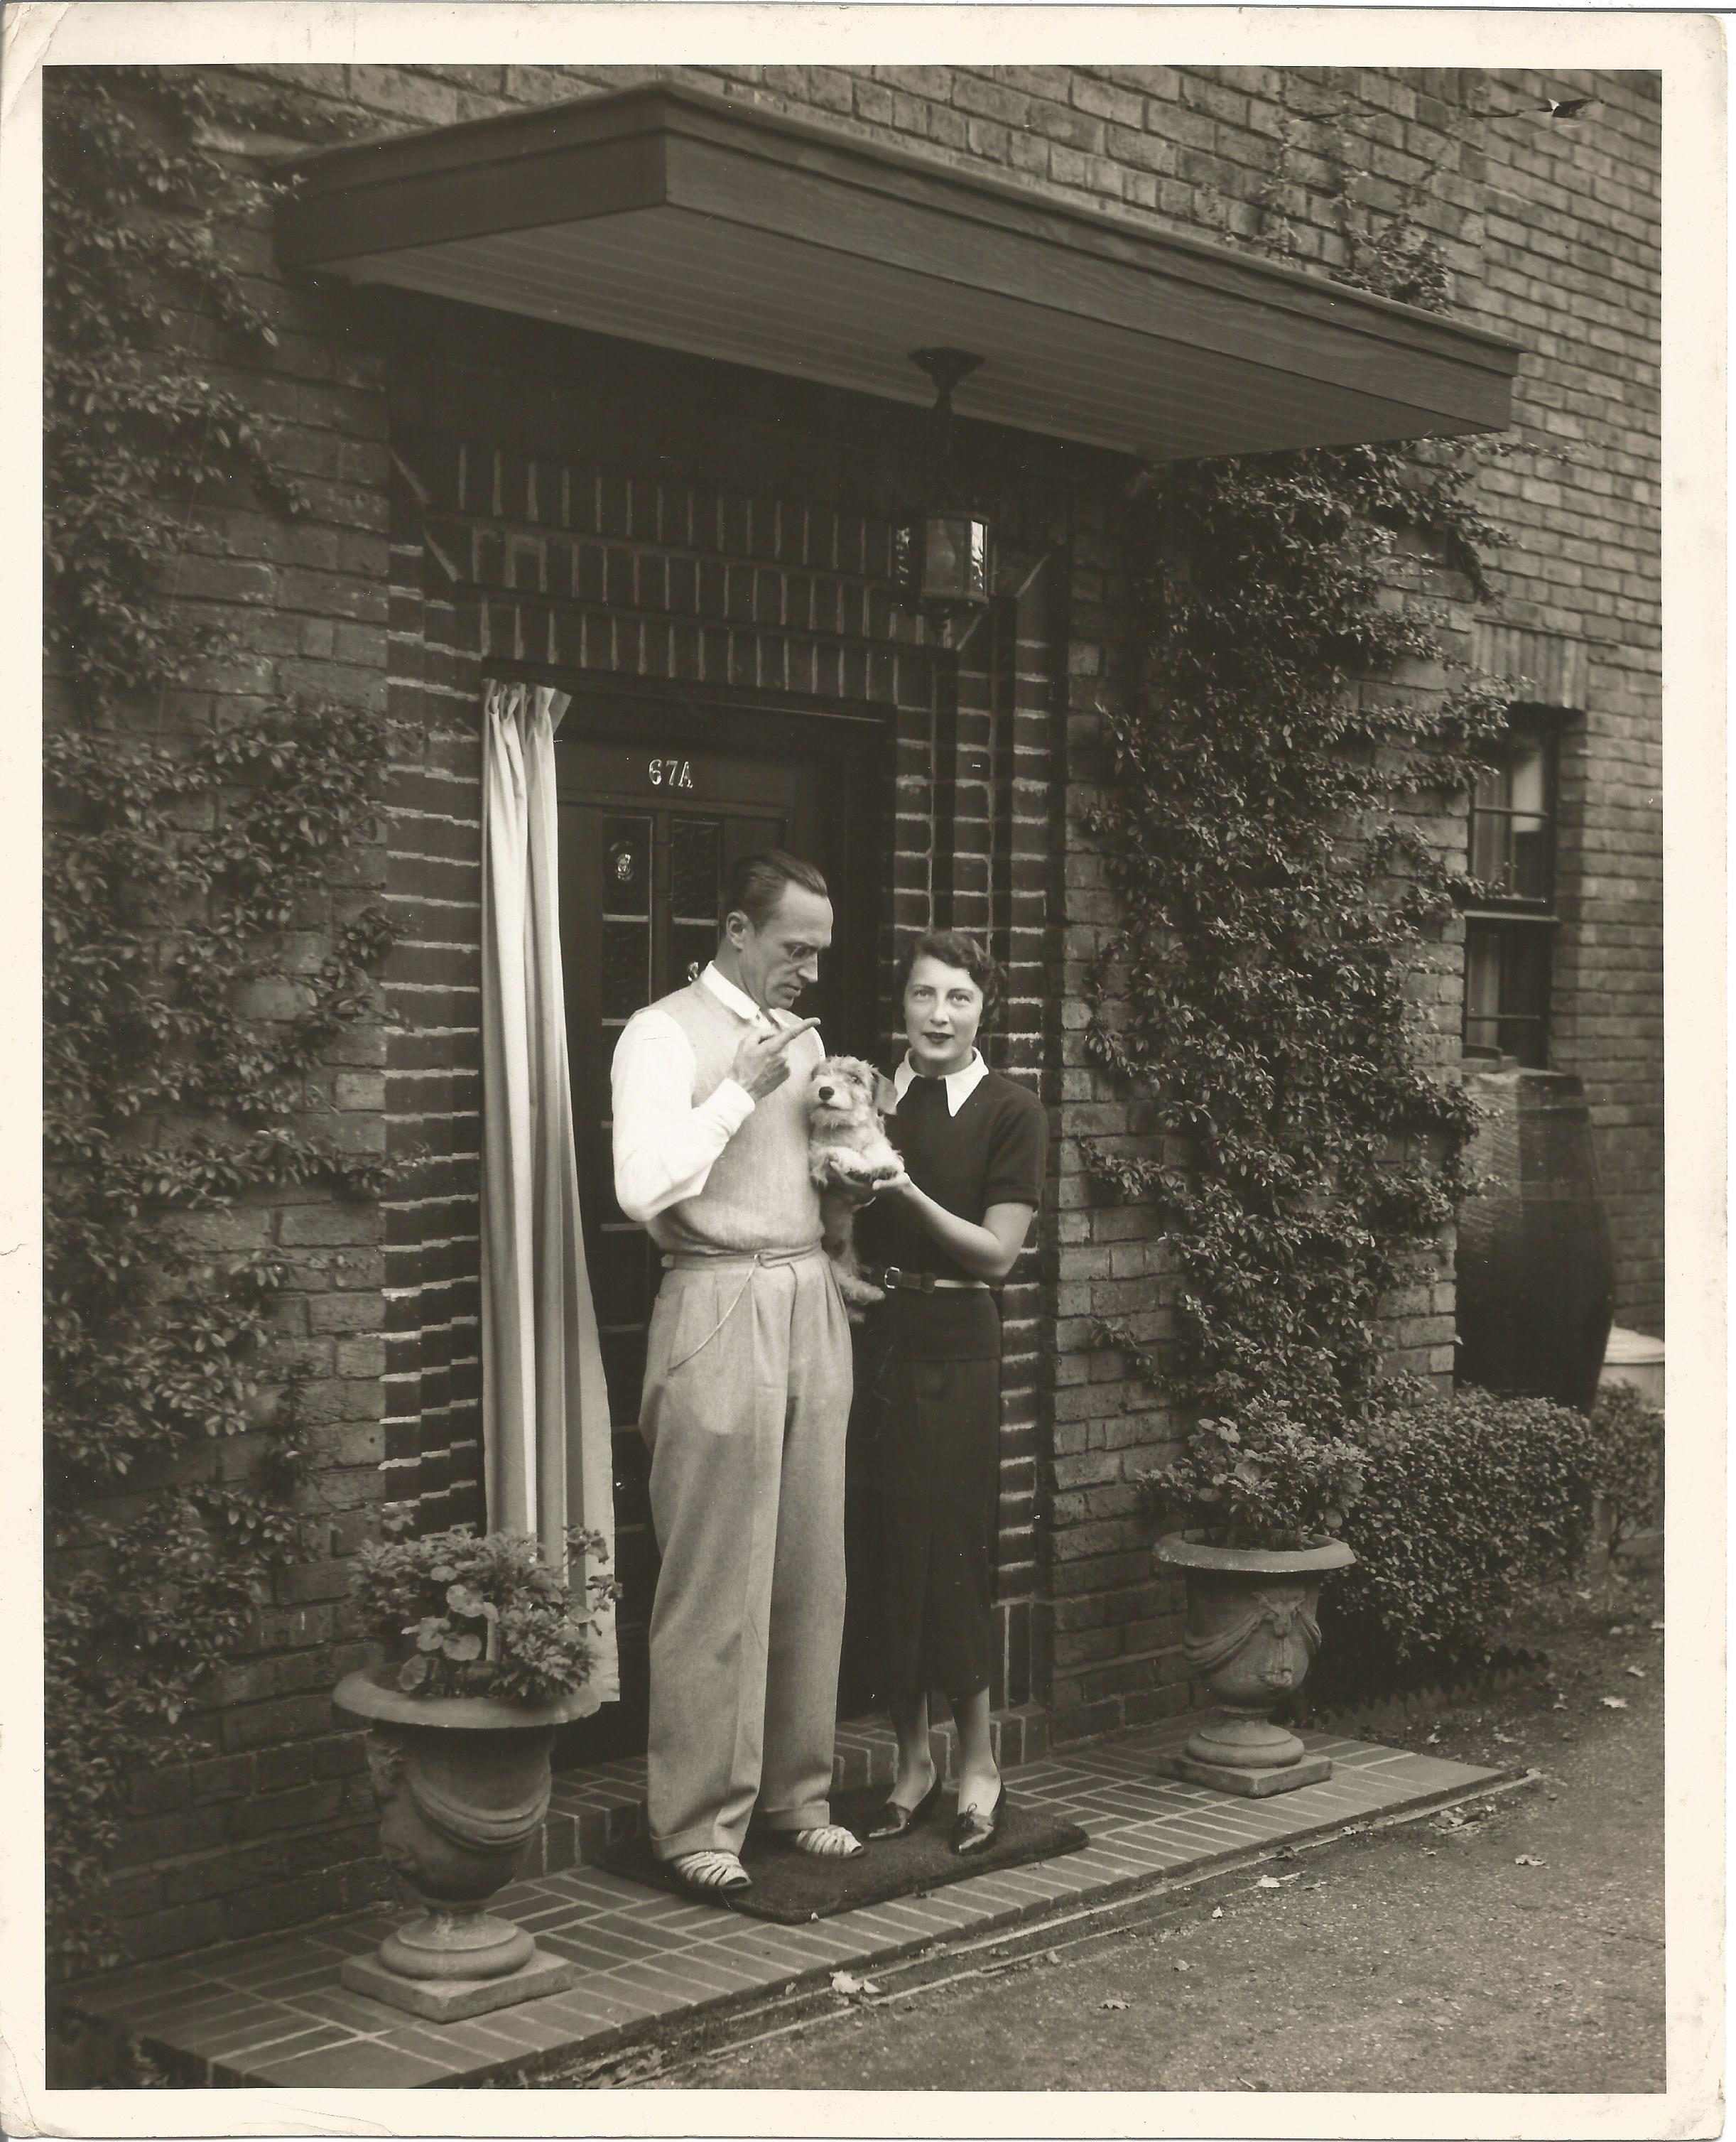 Actor Conrad Veidt vintage candid signed 10x8 black and white photo at home with his wife and dog, - Image 2 of 3